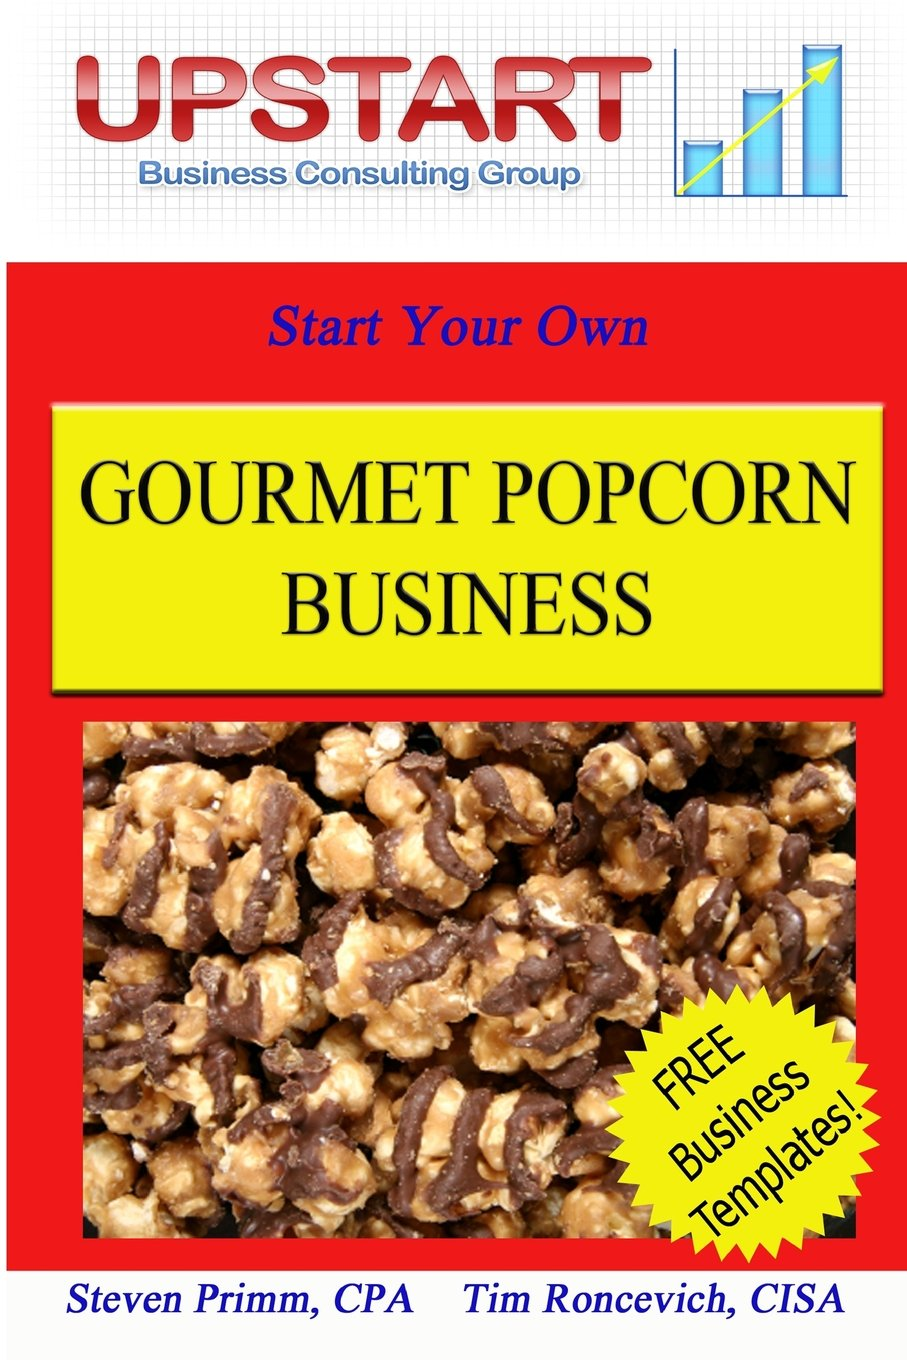 popcorn business description